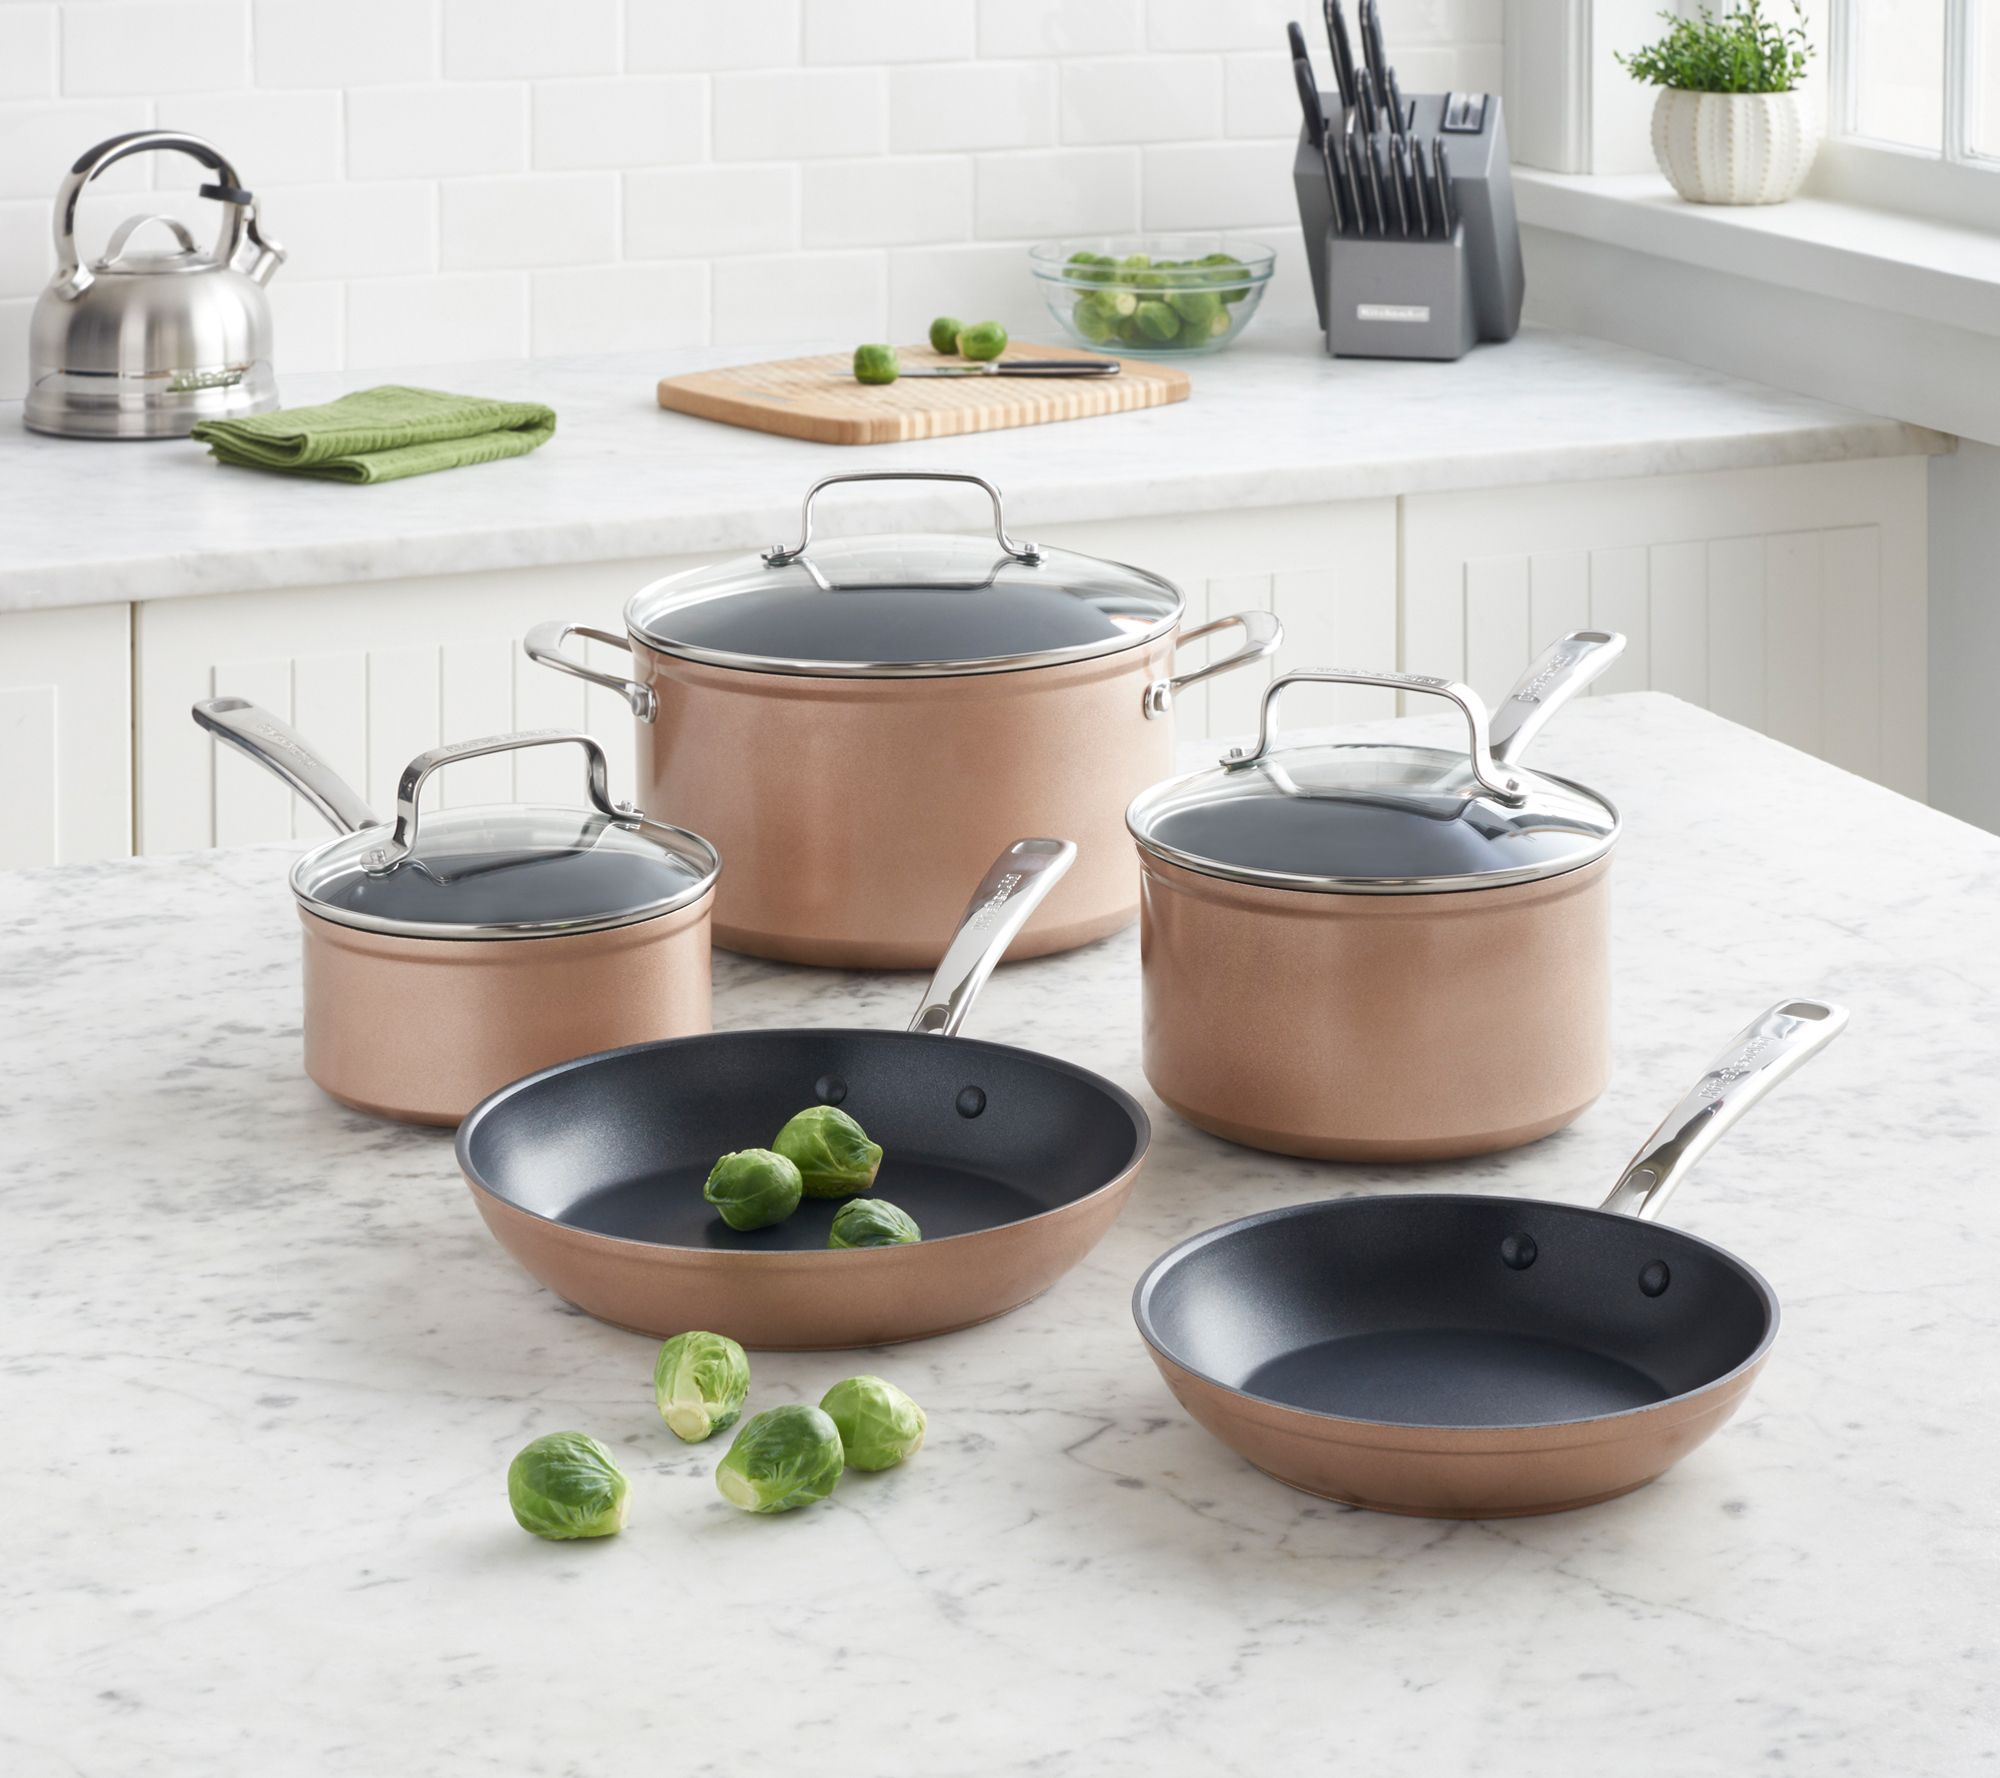 KitchenAid Hard Anodized Nonstick Cookware Set-Toffee Delight — QVC.com